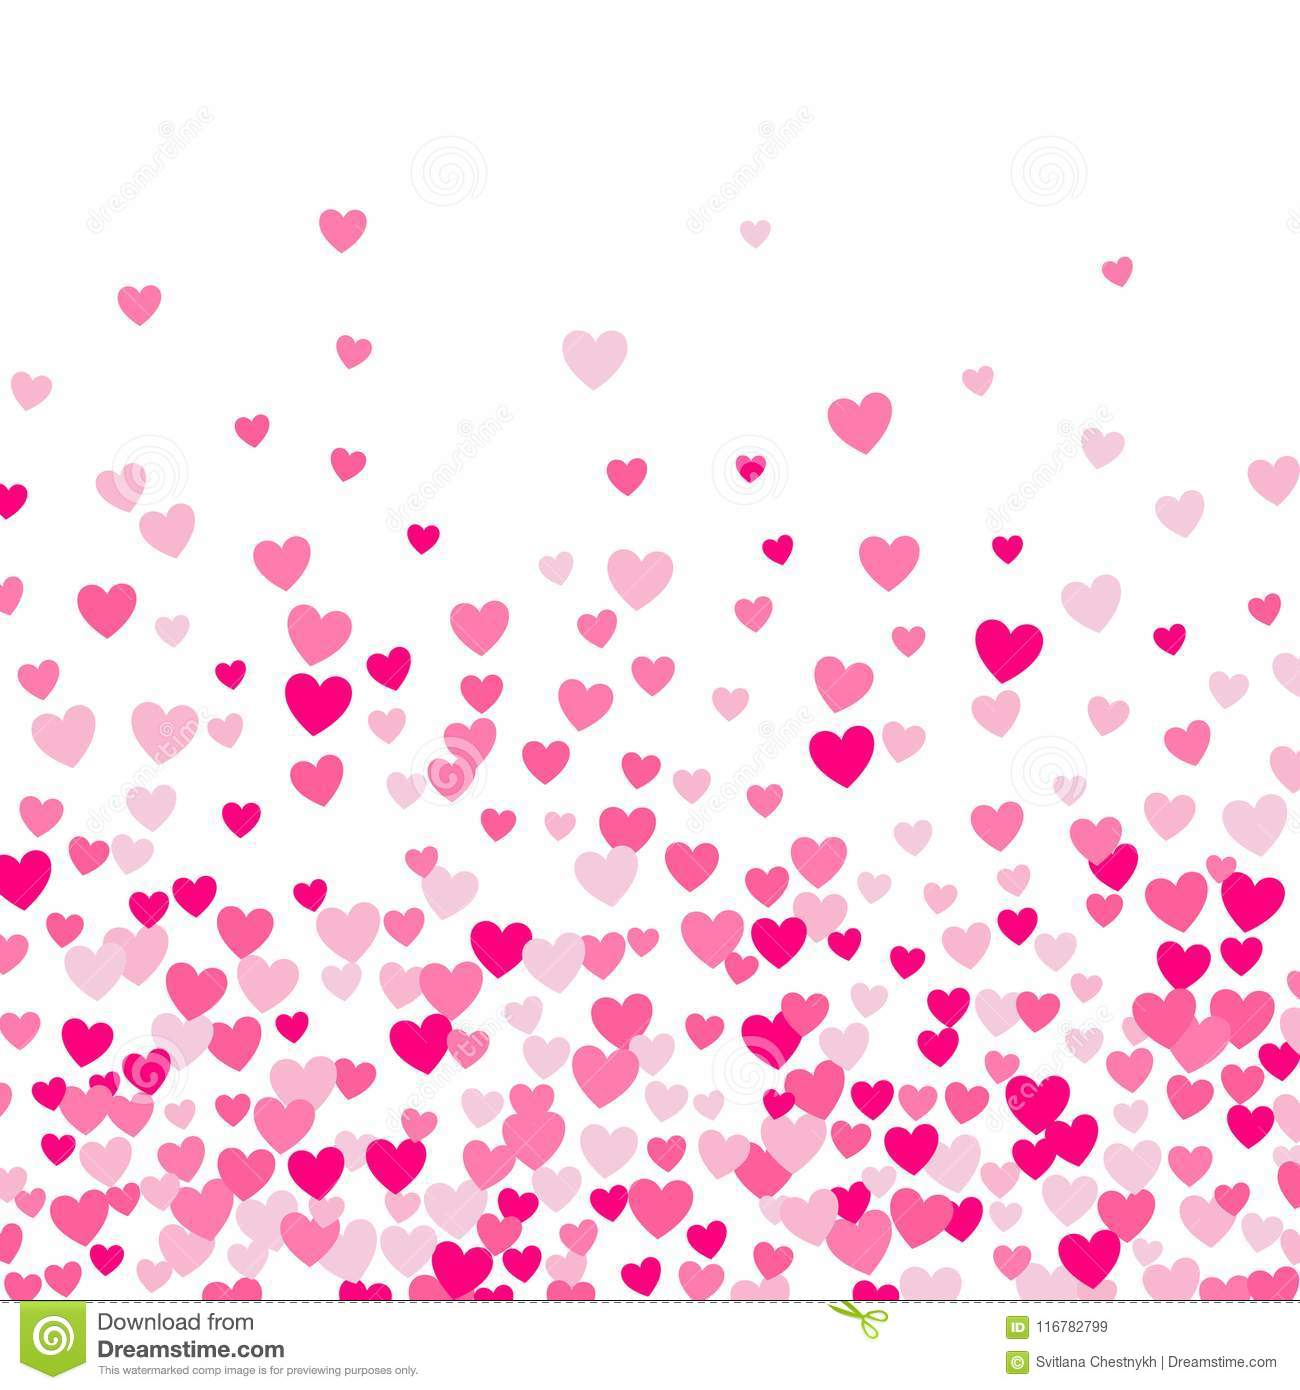 Cute little hearts background, random order, different size and colors